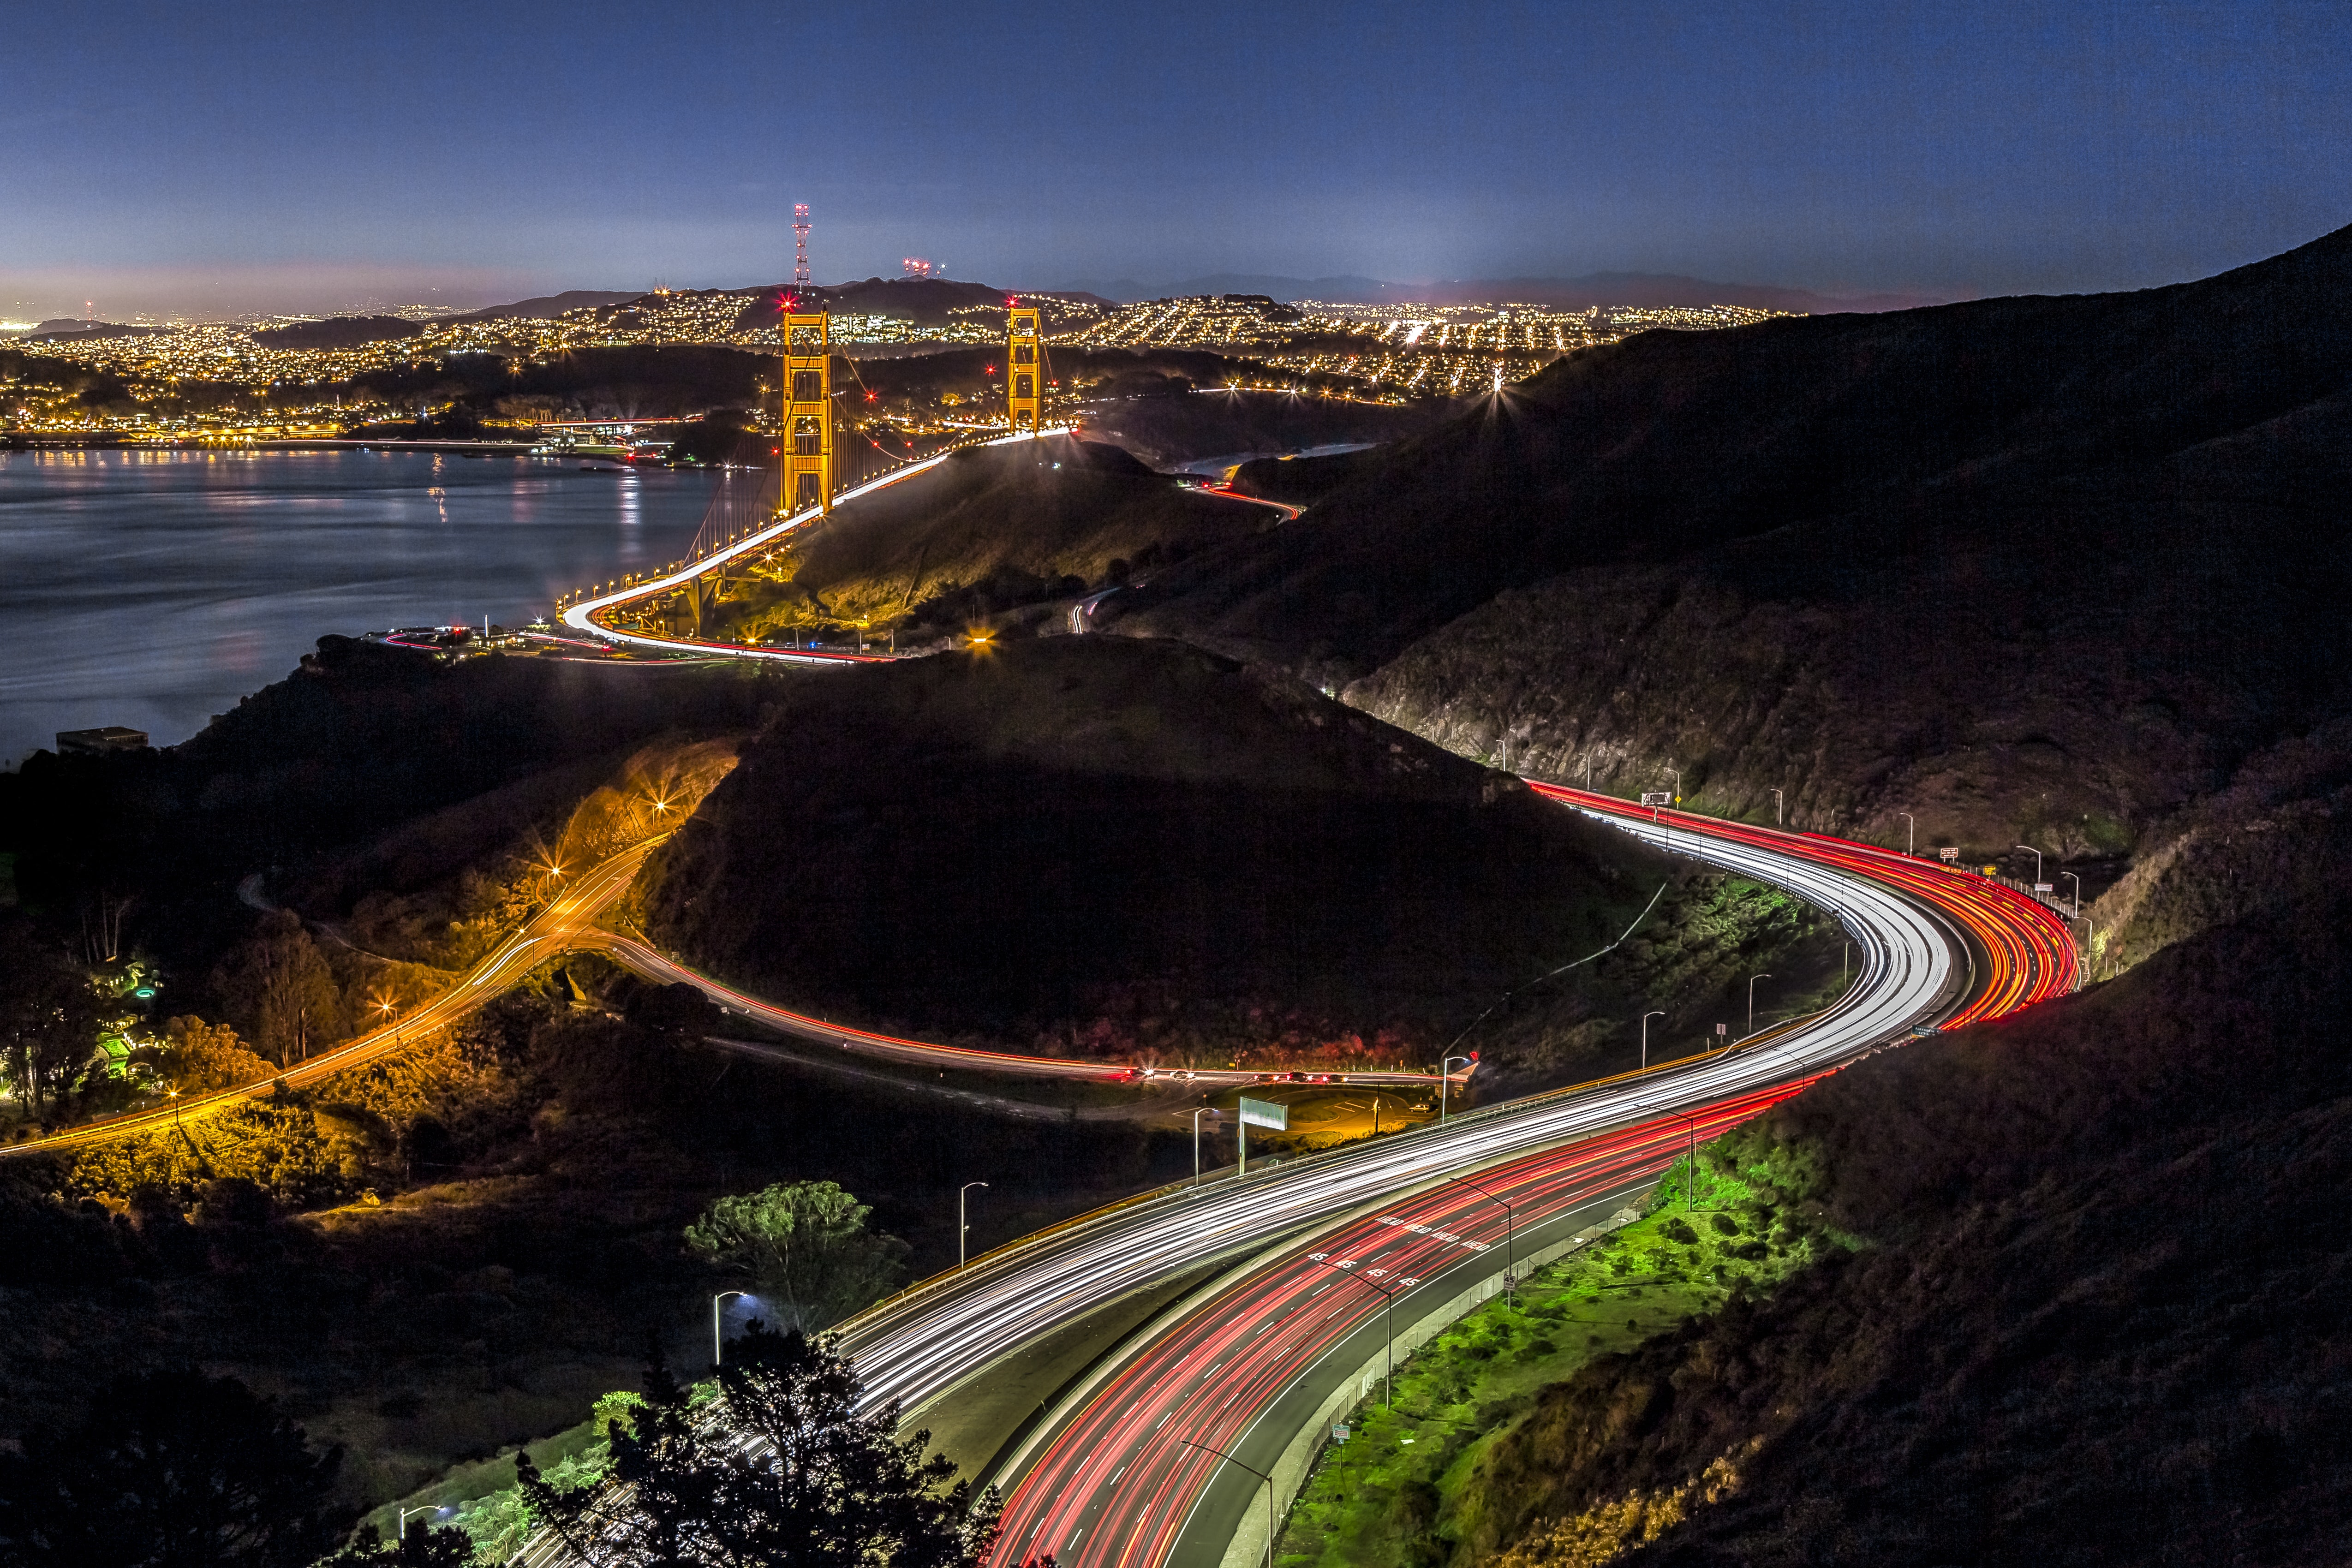 Long exposure of San Francisco traffic at night with the Golden Gate bridge in the background